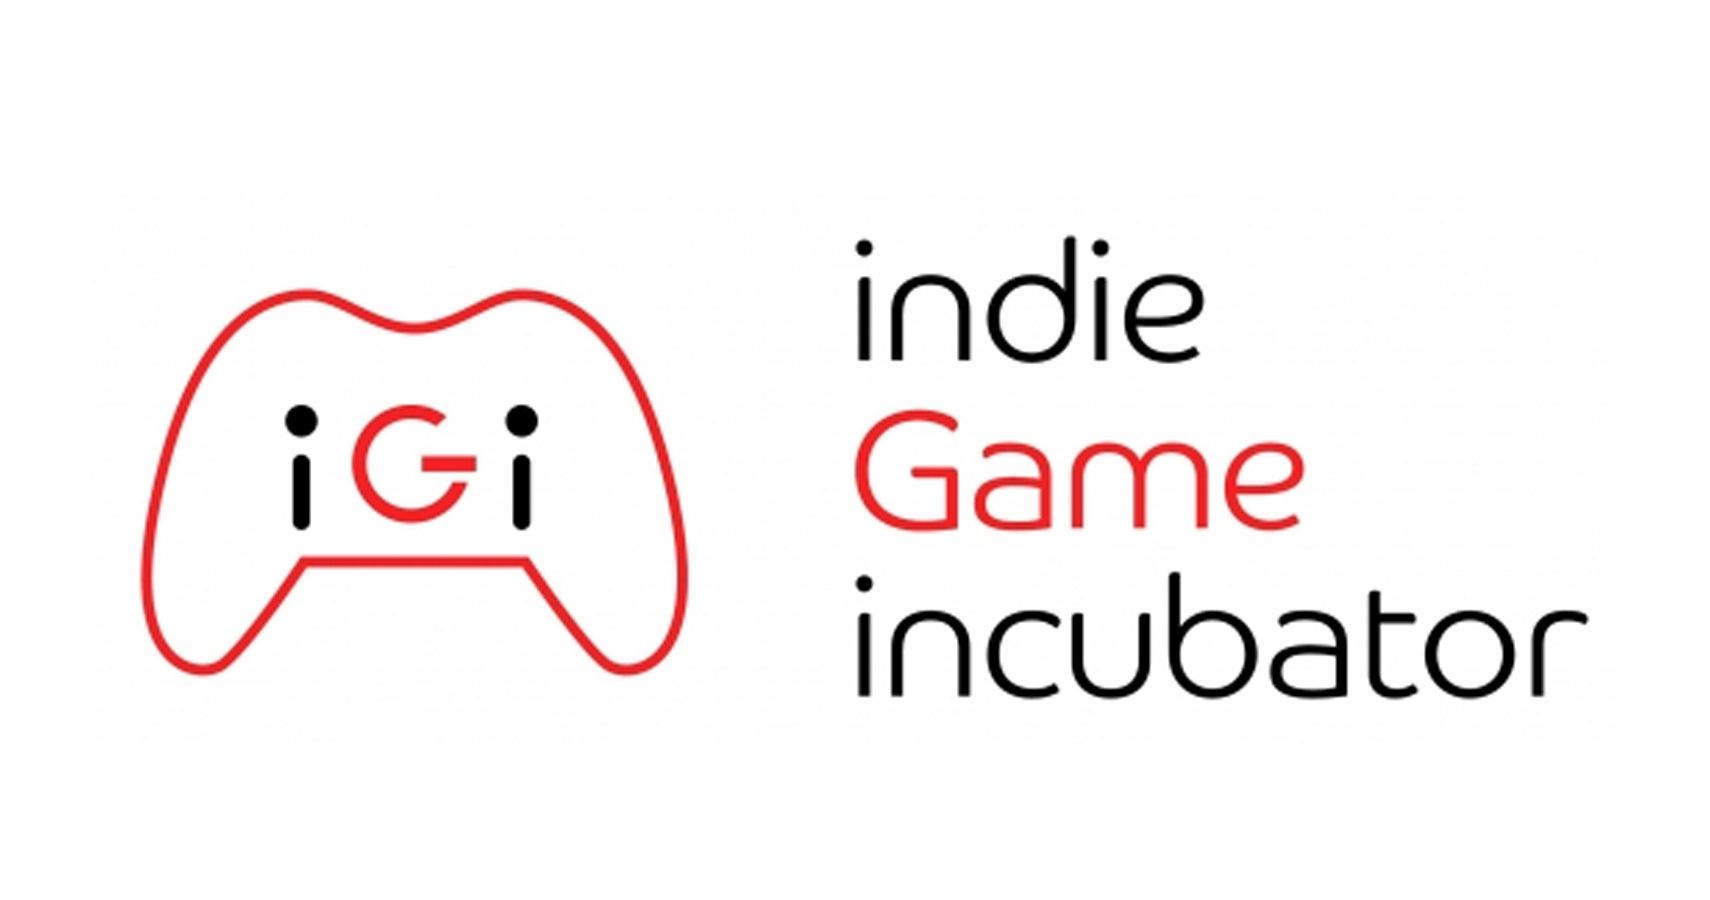 Marvelous Announces Xbox And Unity As Partners For Indie Game Incubator Initiative